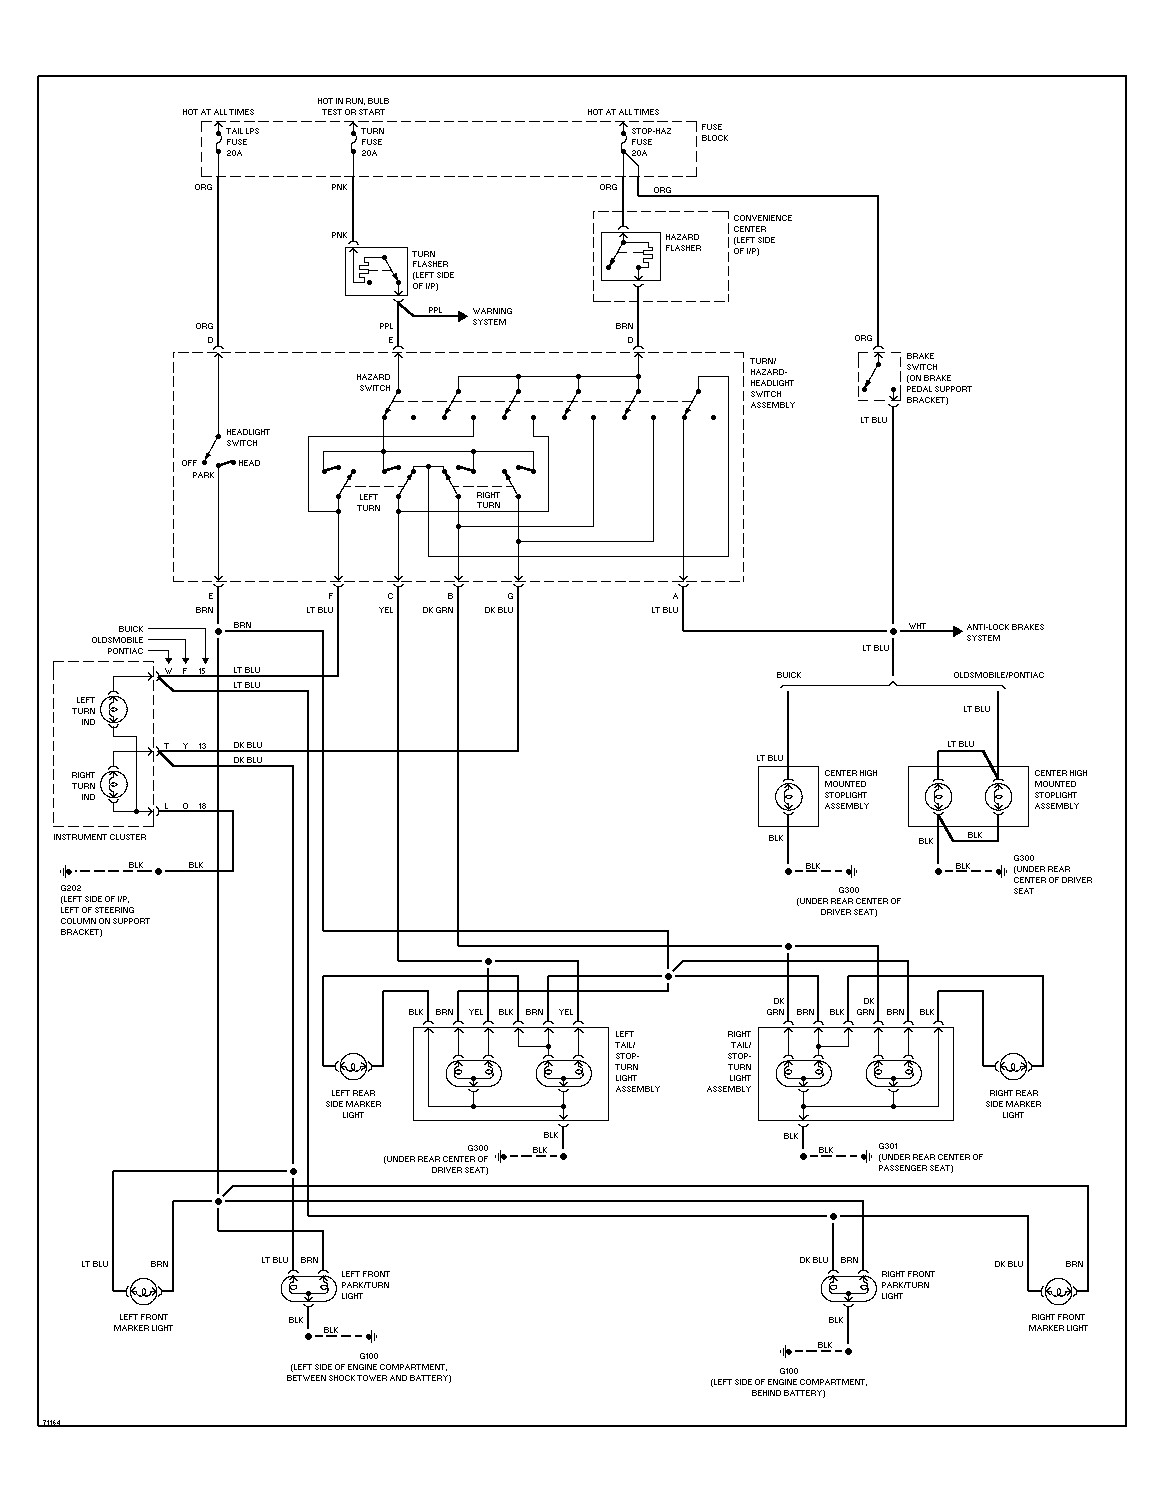 2005 F150 Radio Wiring Diagram from mainetreasurechest.com